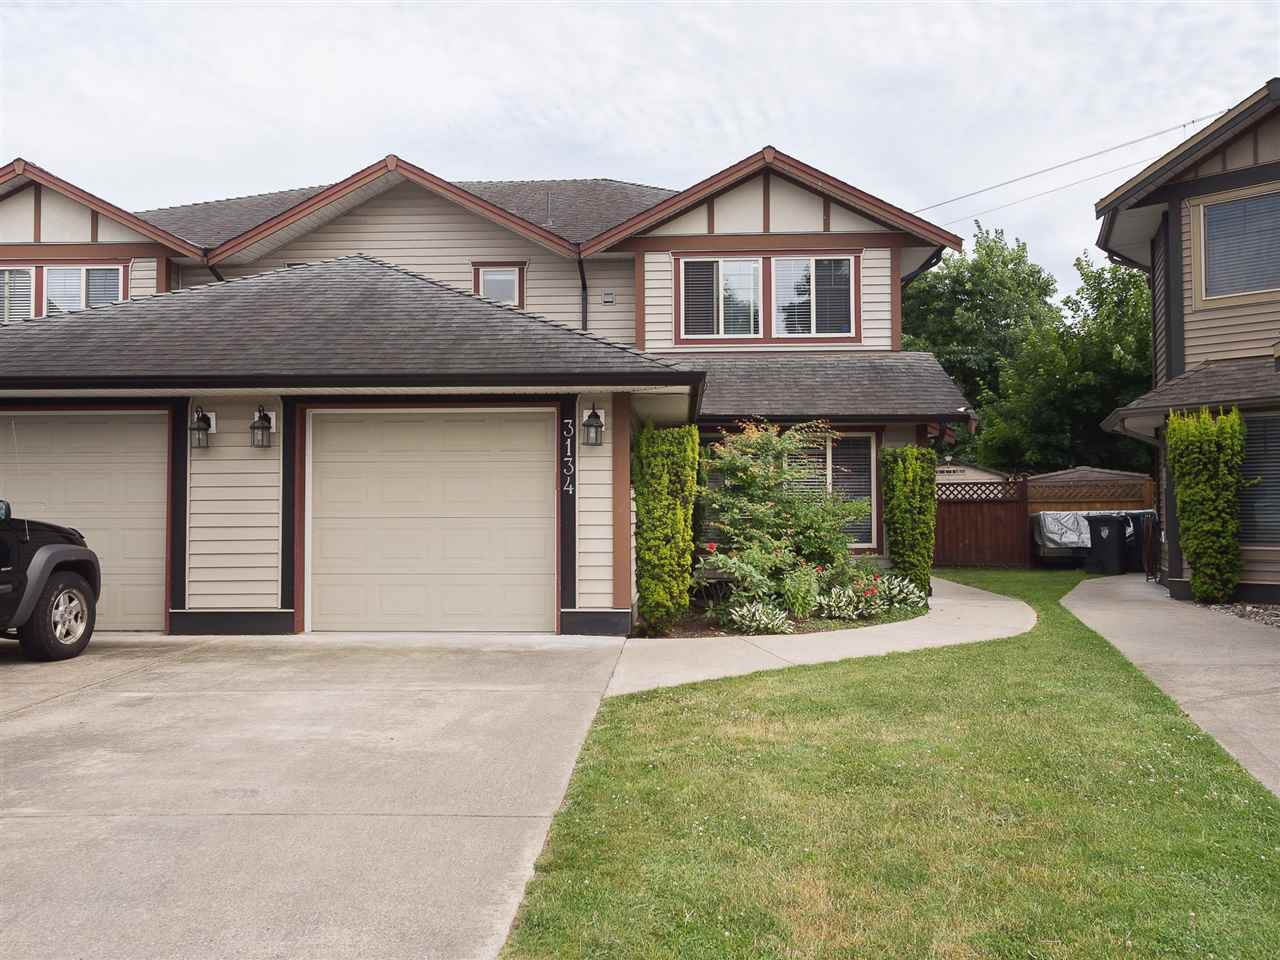 Main Photo: 3134 267A Street in Langley: Aldergrove Langley House 1/2 Duplex for sale : MLS®# R2284390